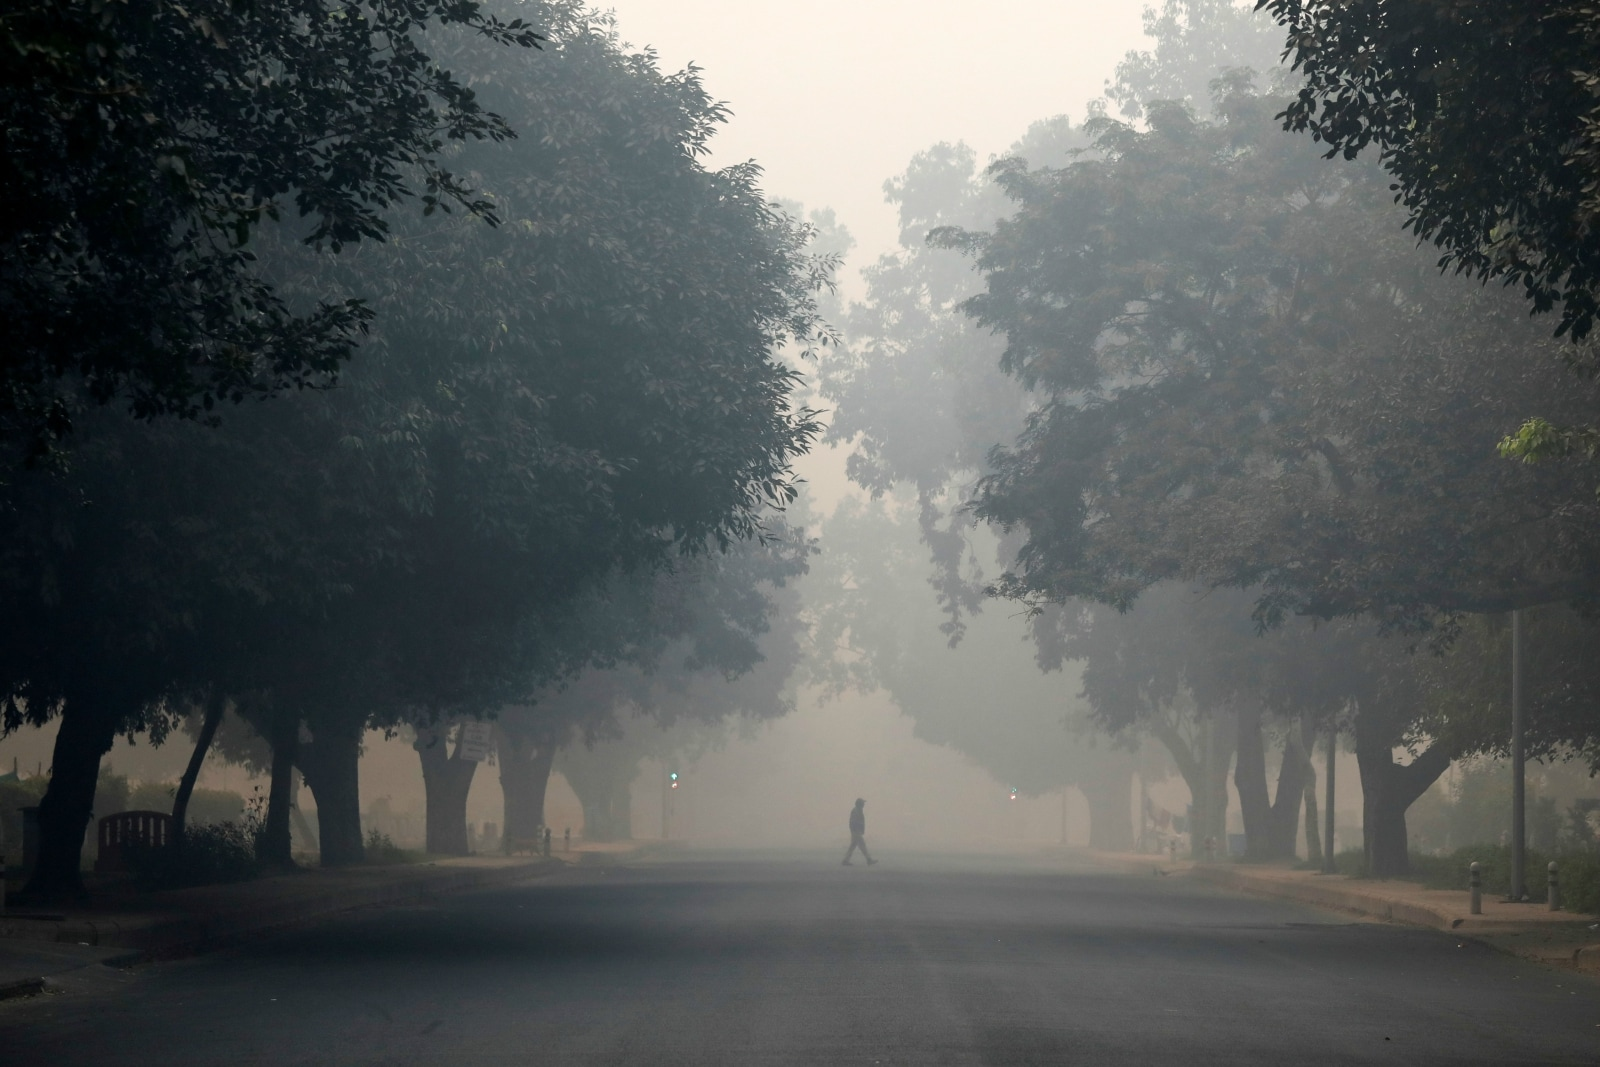 A man crosses a road on a smoggy morning in New Delhi, India, November 8, 2018. REUTERS/Anushree Fadnavis